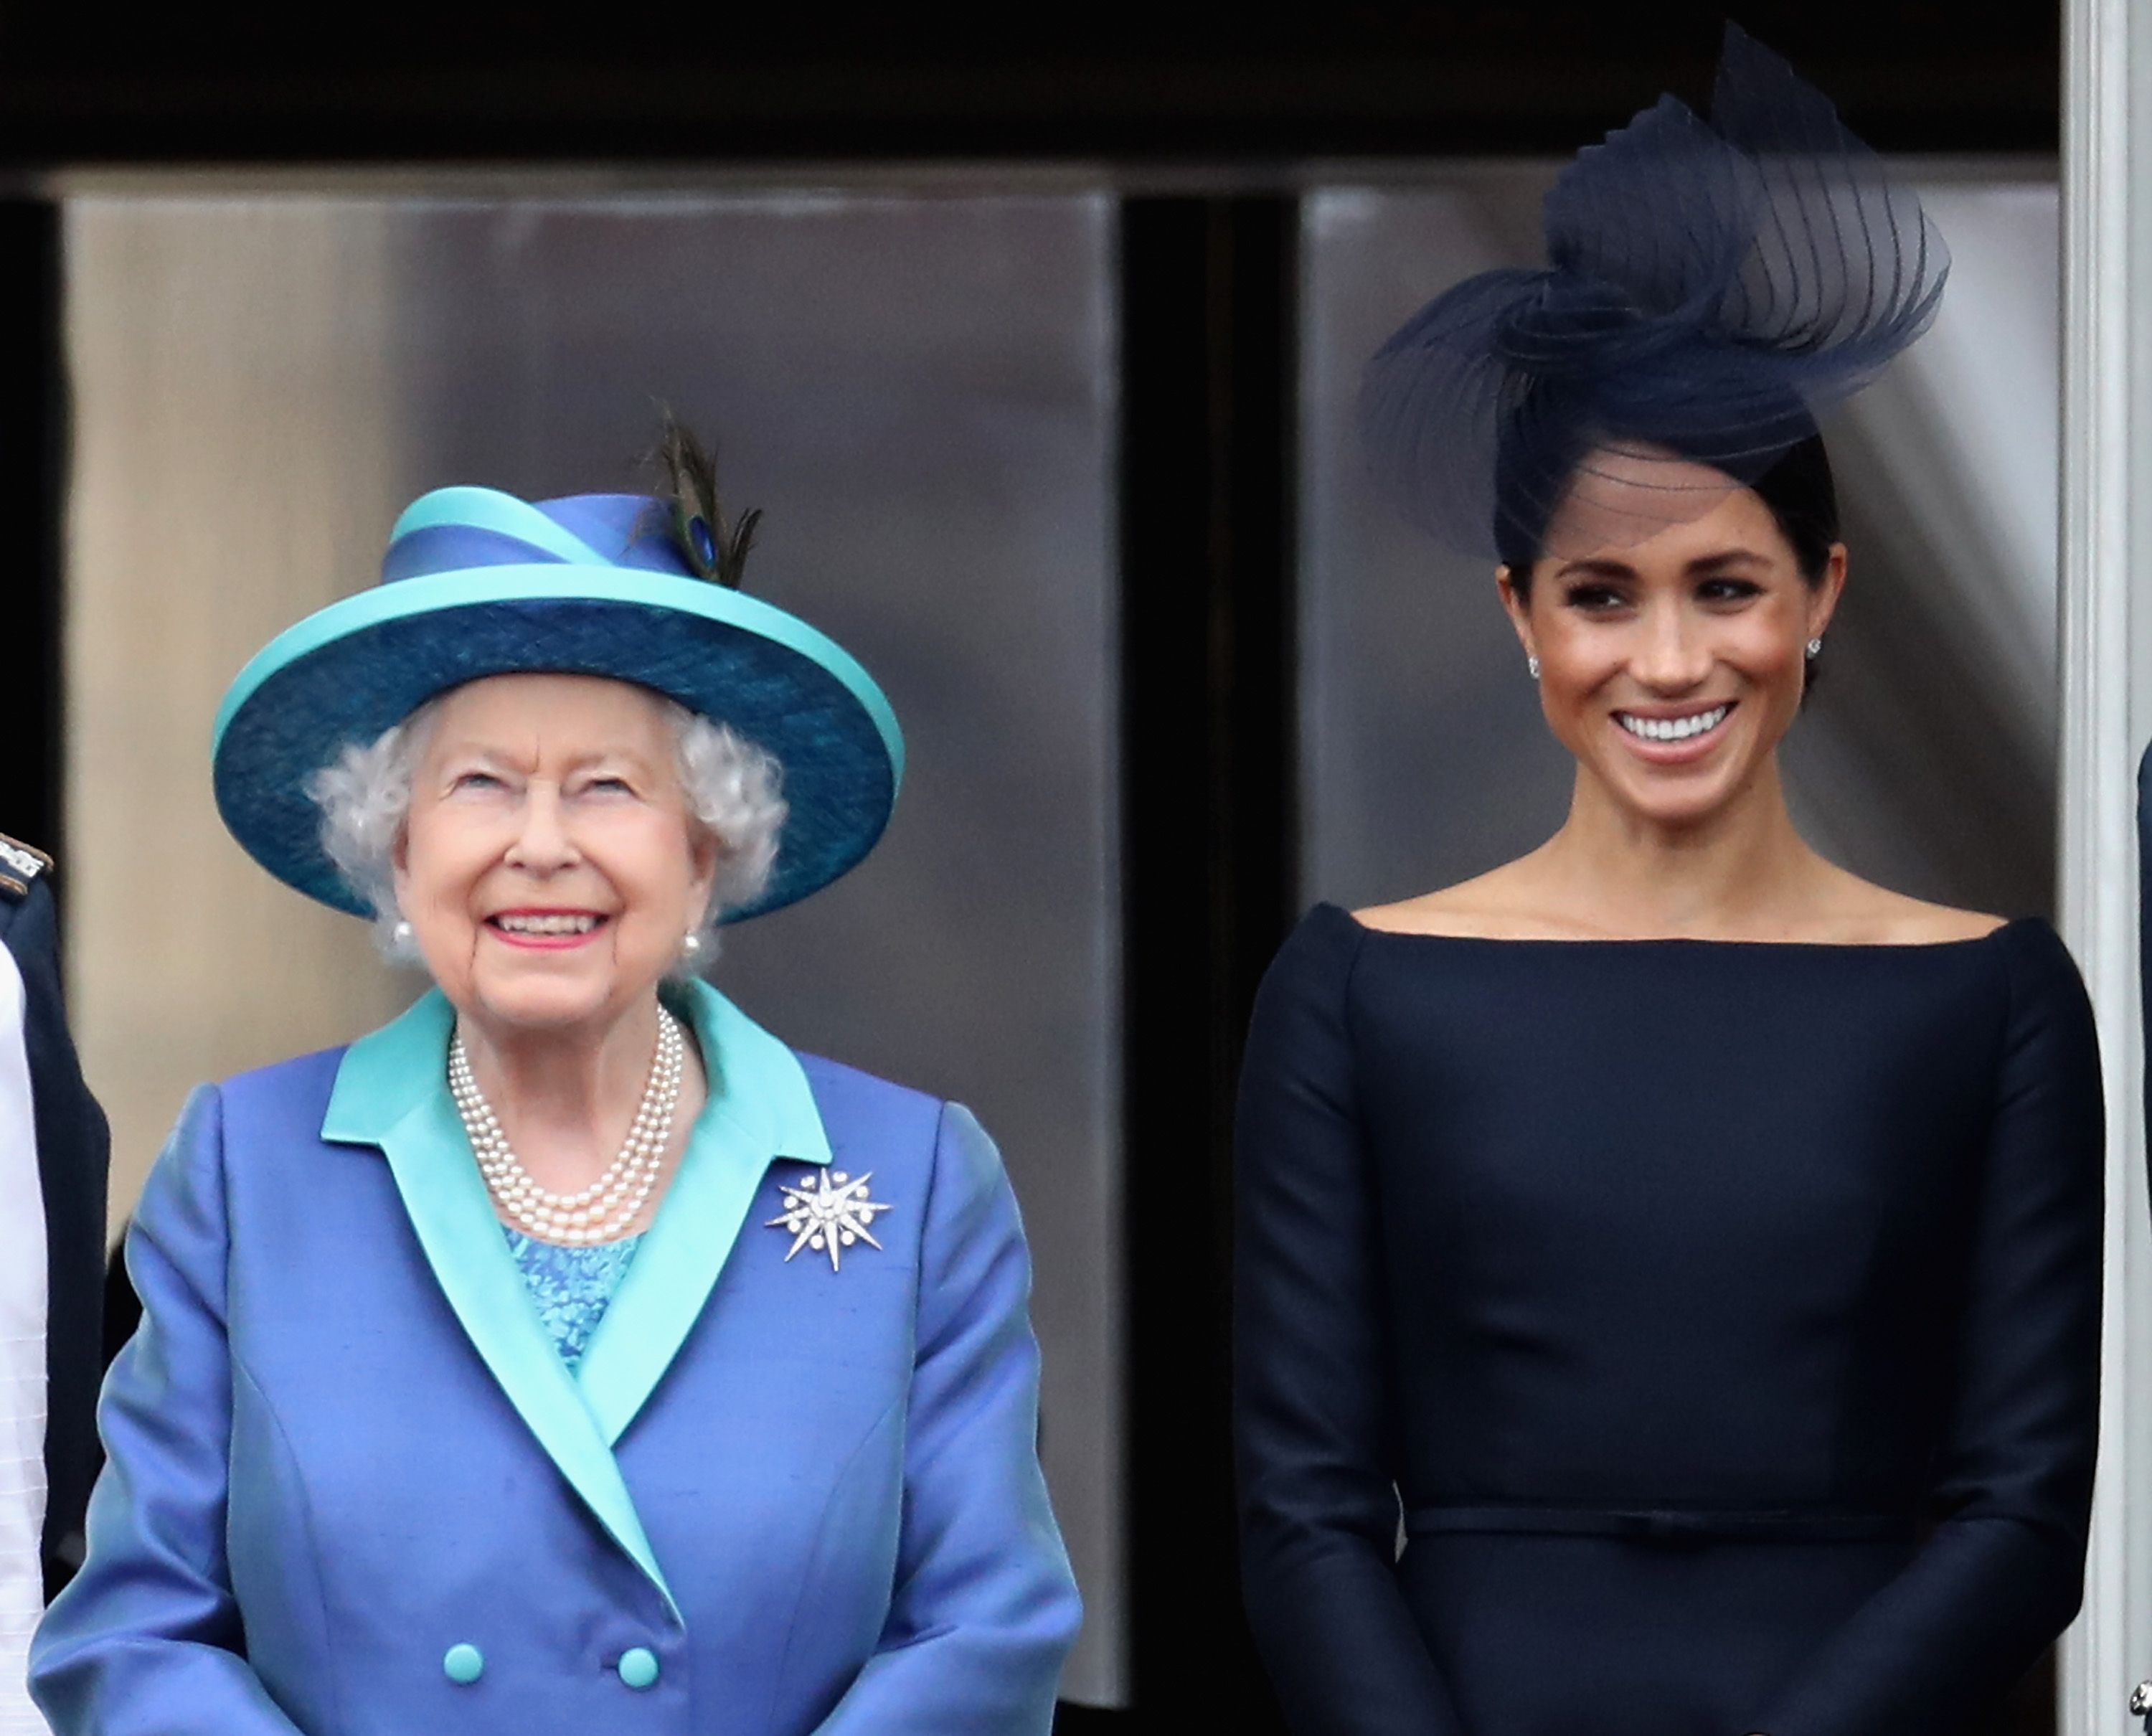 Queen Elizabeth and Meghan Markle on Buckingham Palace balcony